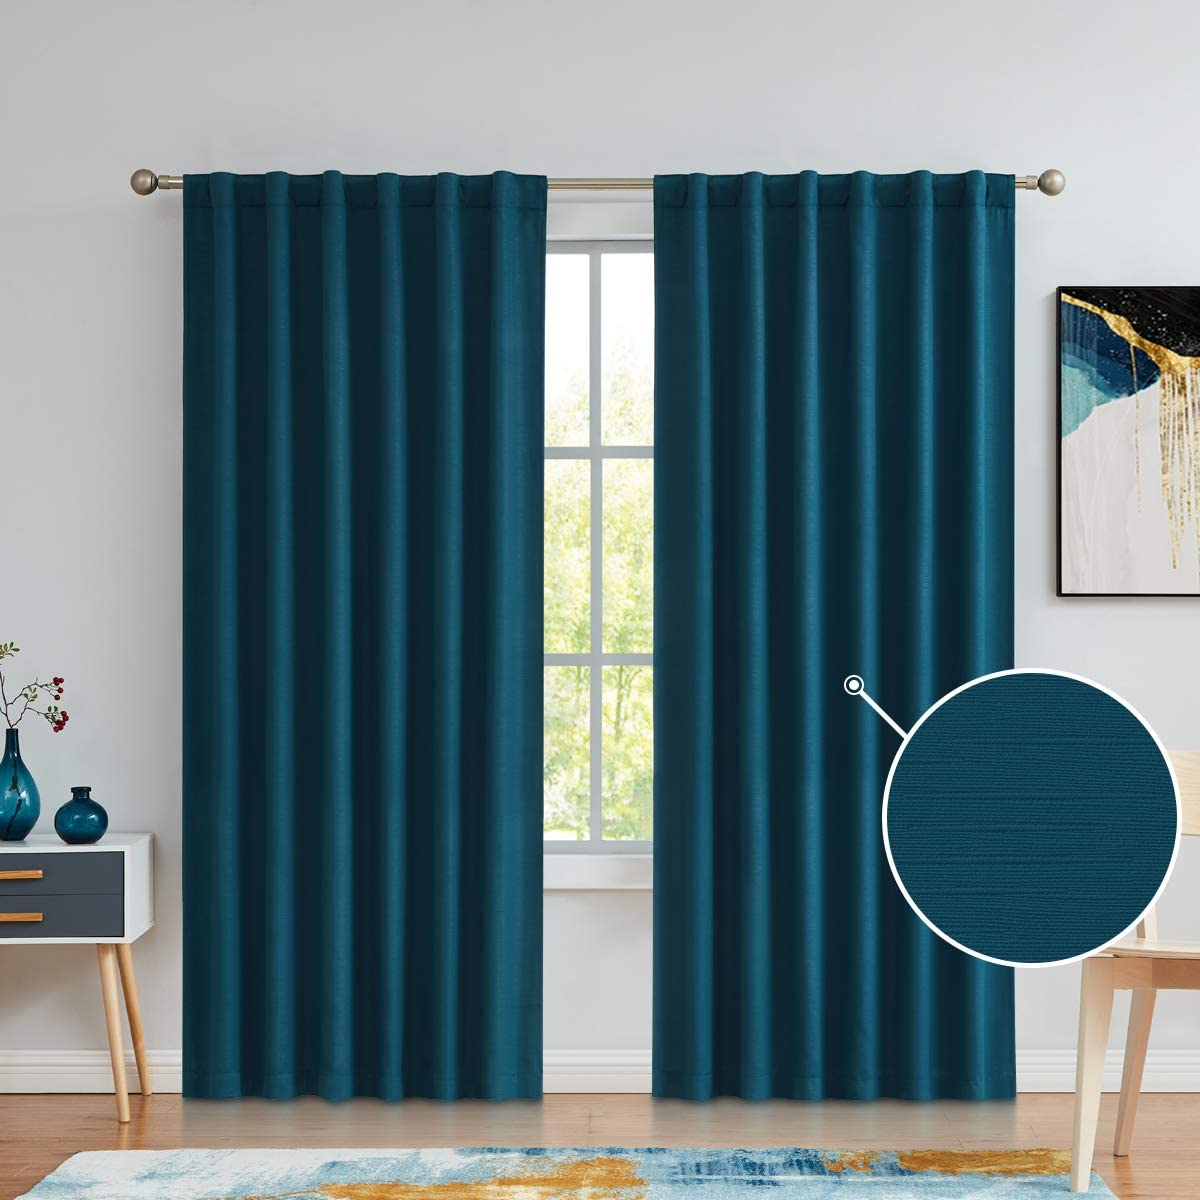 Back Tab Rod Pocket Blackout Curtains 95 Inches Long, Embossed Textured Room Darkening Wide Window Drapes for Bedroom and Living Room, Teal Blue, 52×95, 2 Panels